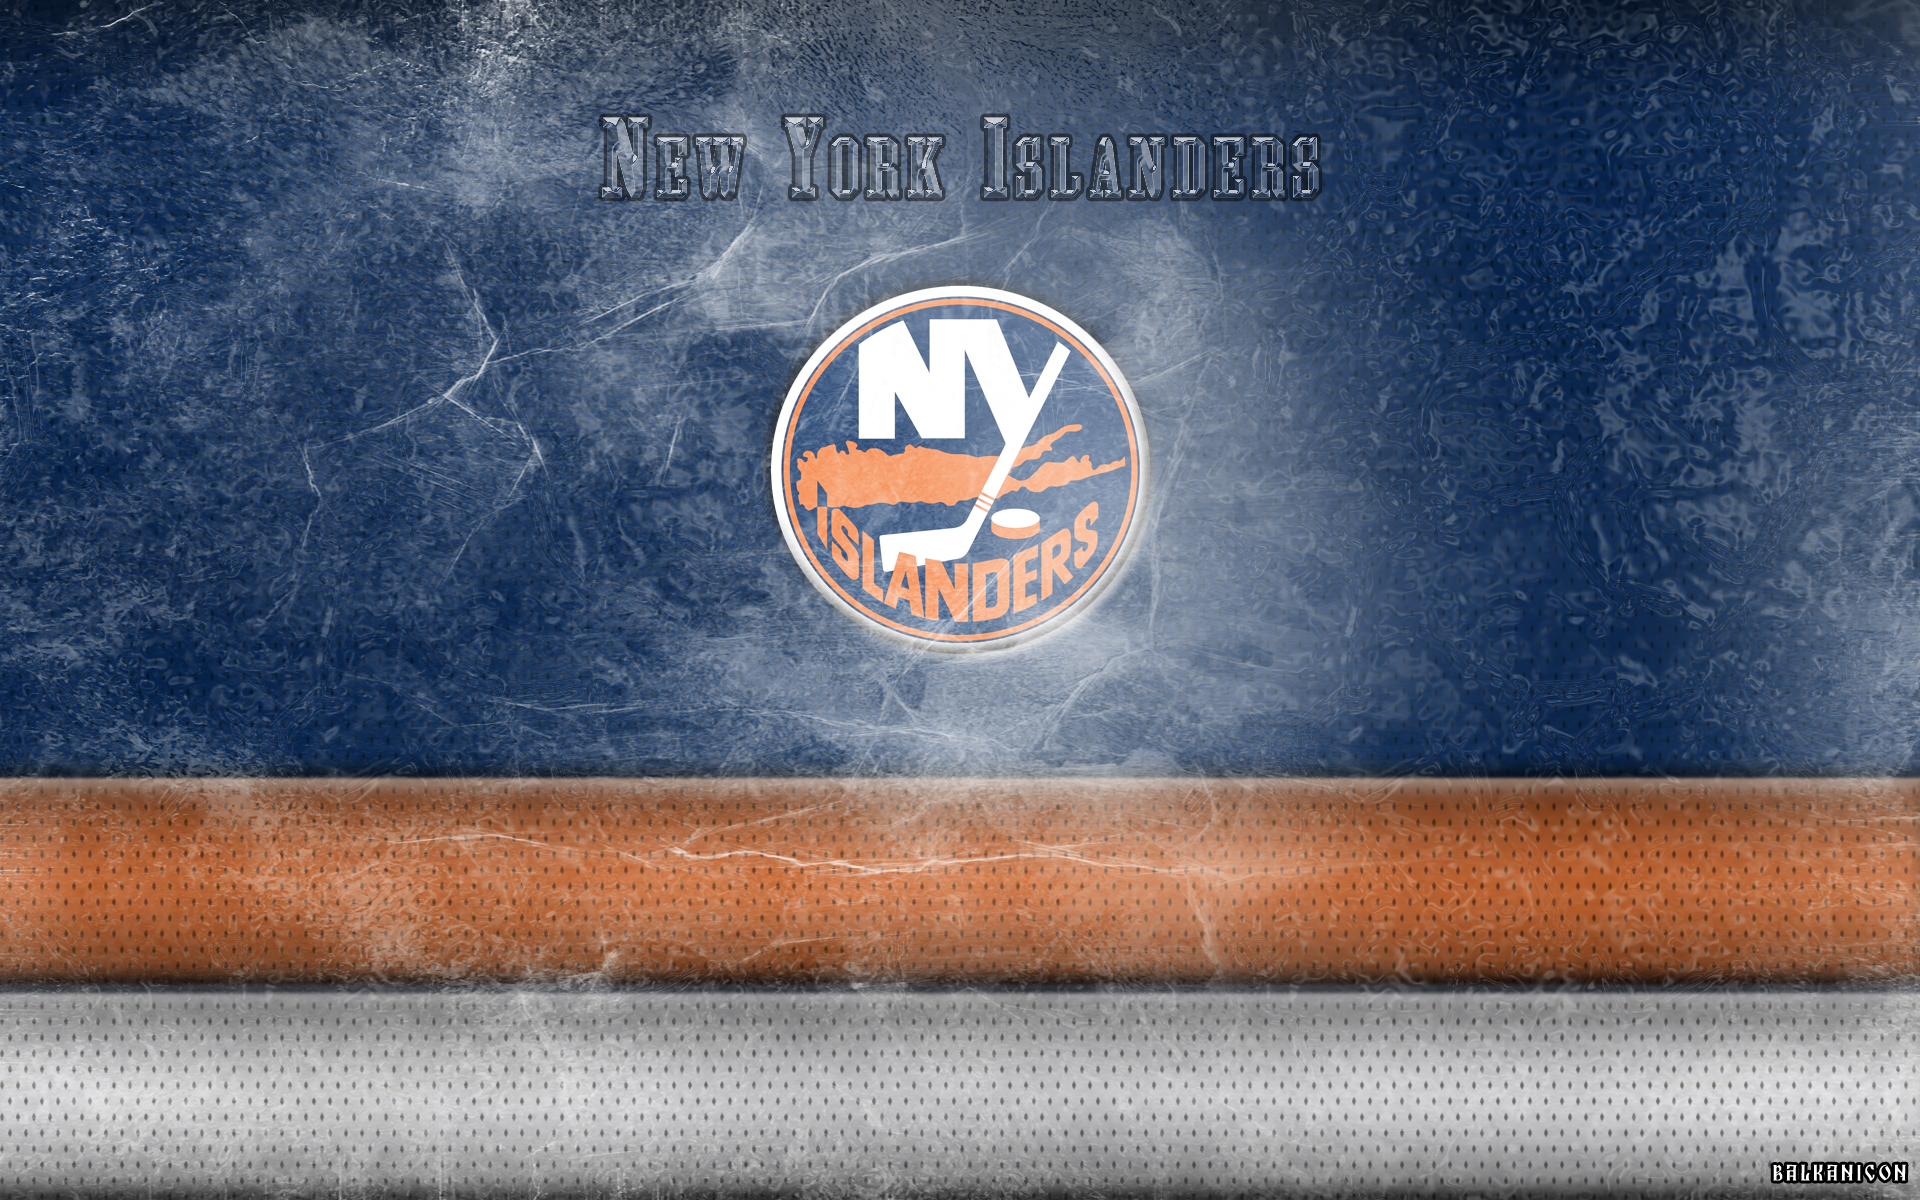 New York Islanders wallpaper by Balkanicon 1920x1200